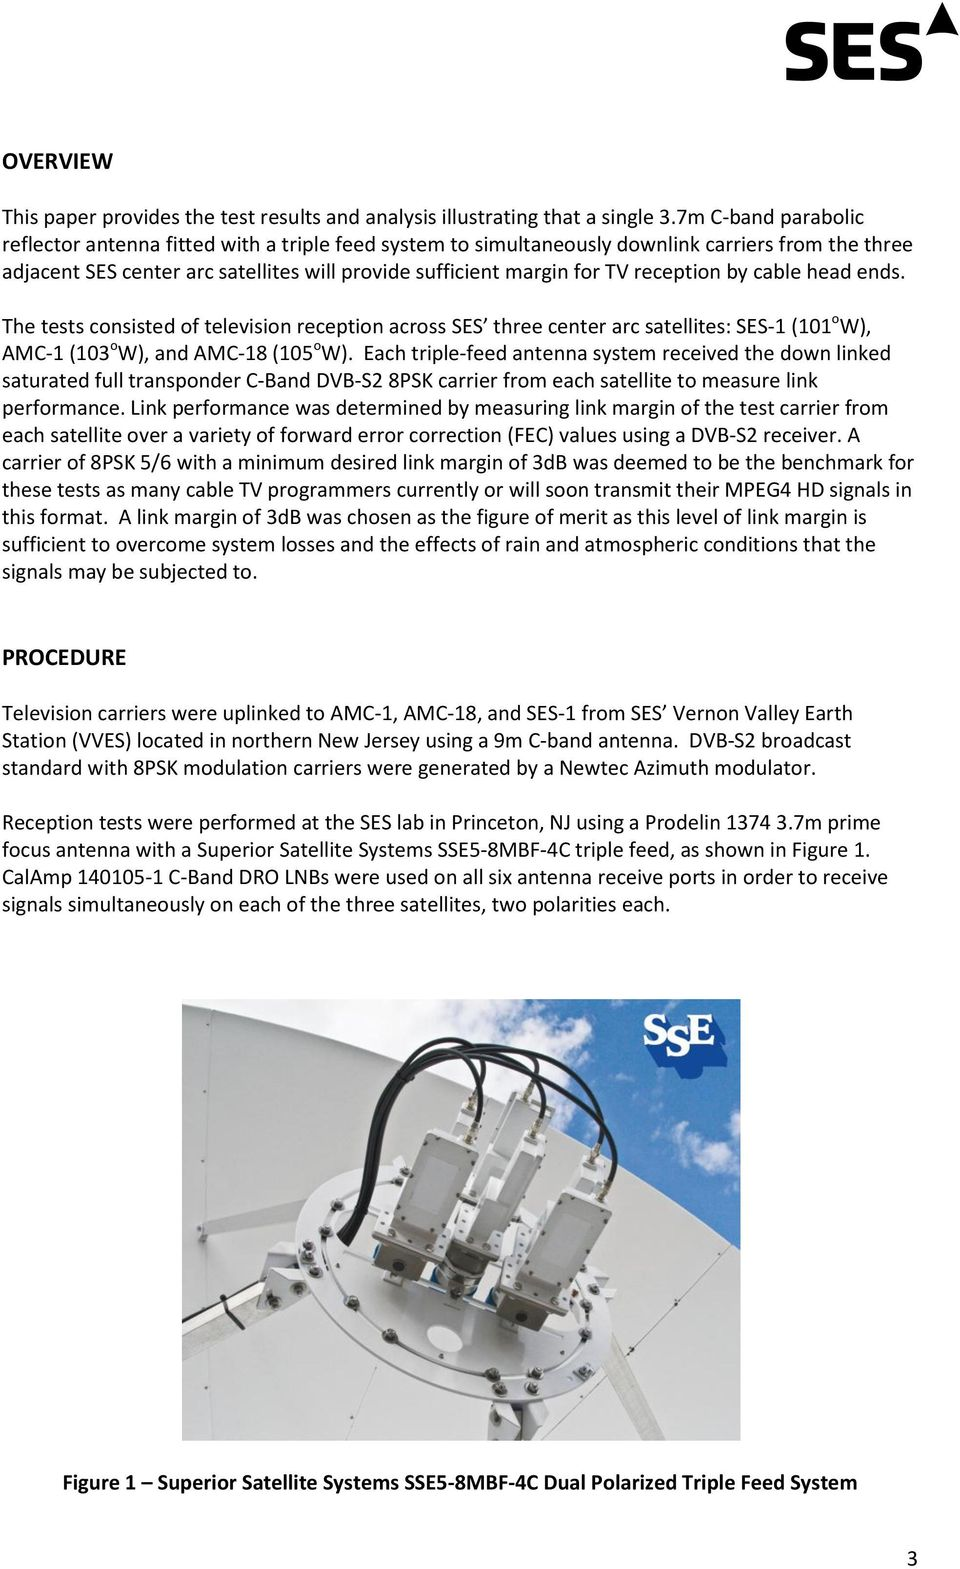 Triple Feed C Band Antenna System Test And Analysis For Use In Three 8 Psk Block Diagram Reception By Cable Head Ends The Tests Consisted Of Television Across Ses Center